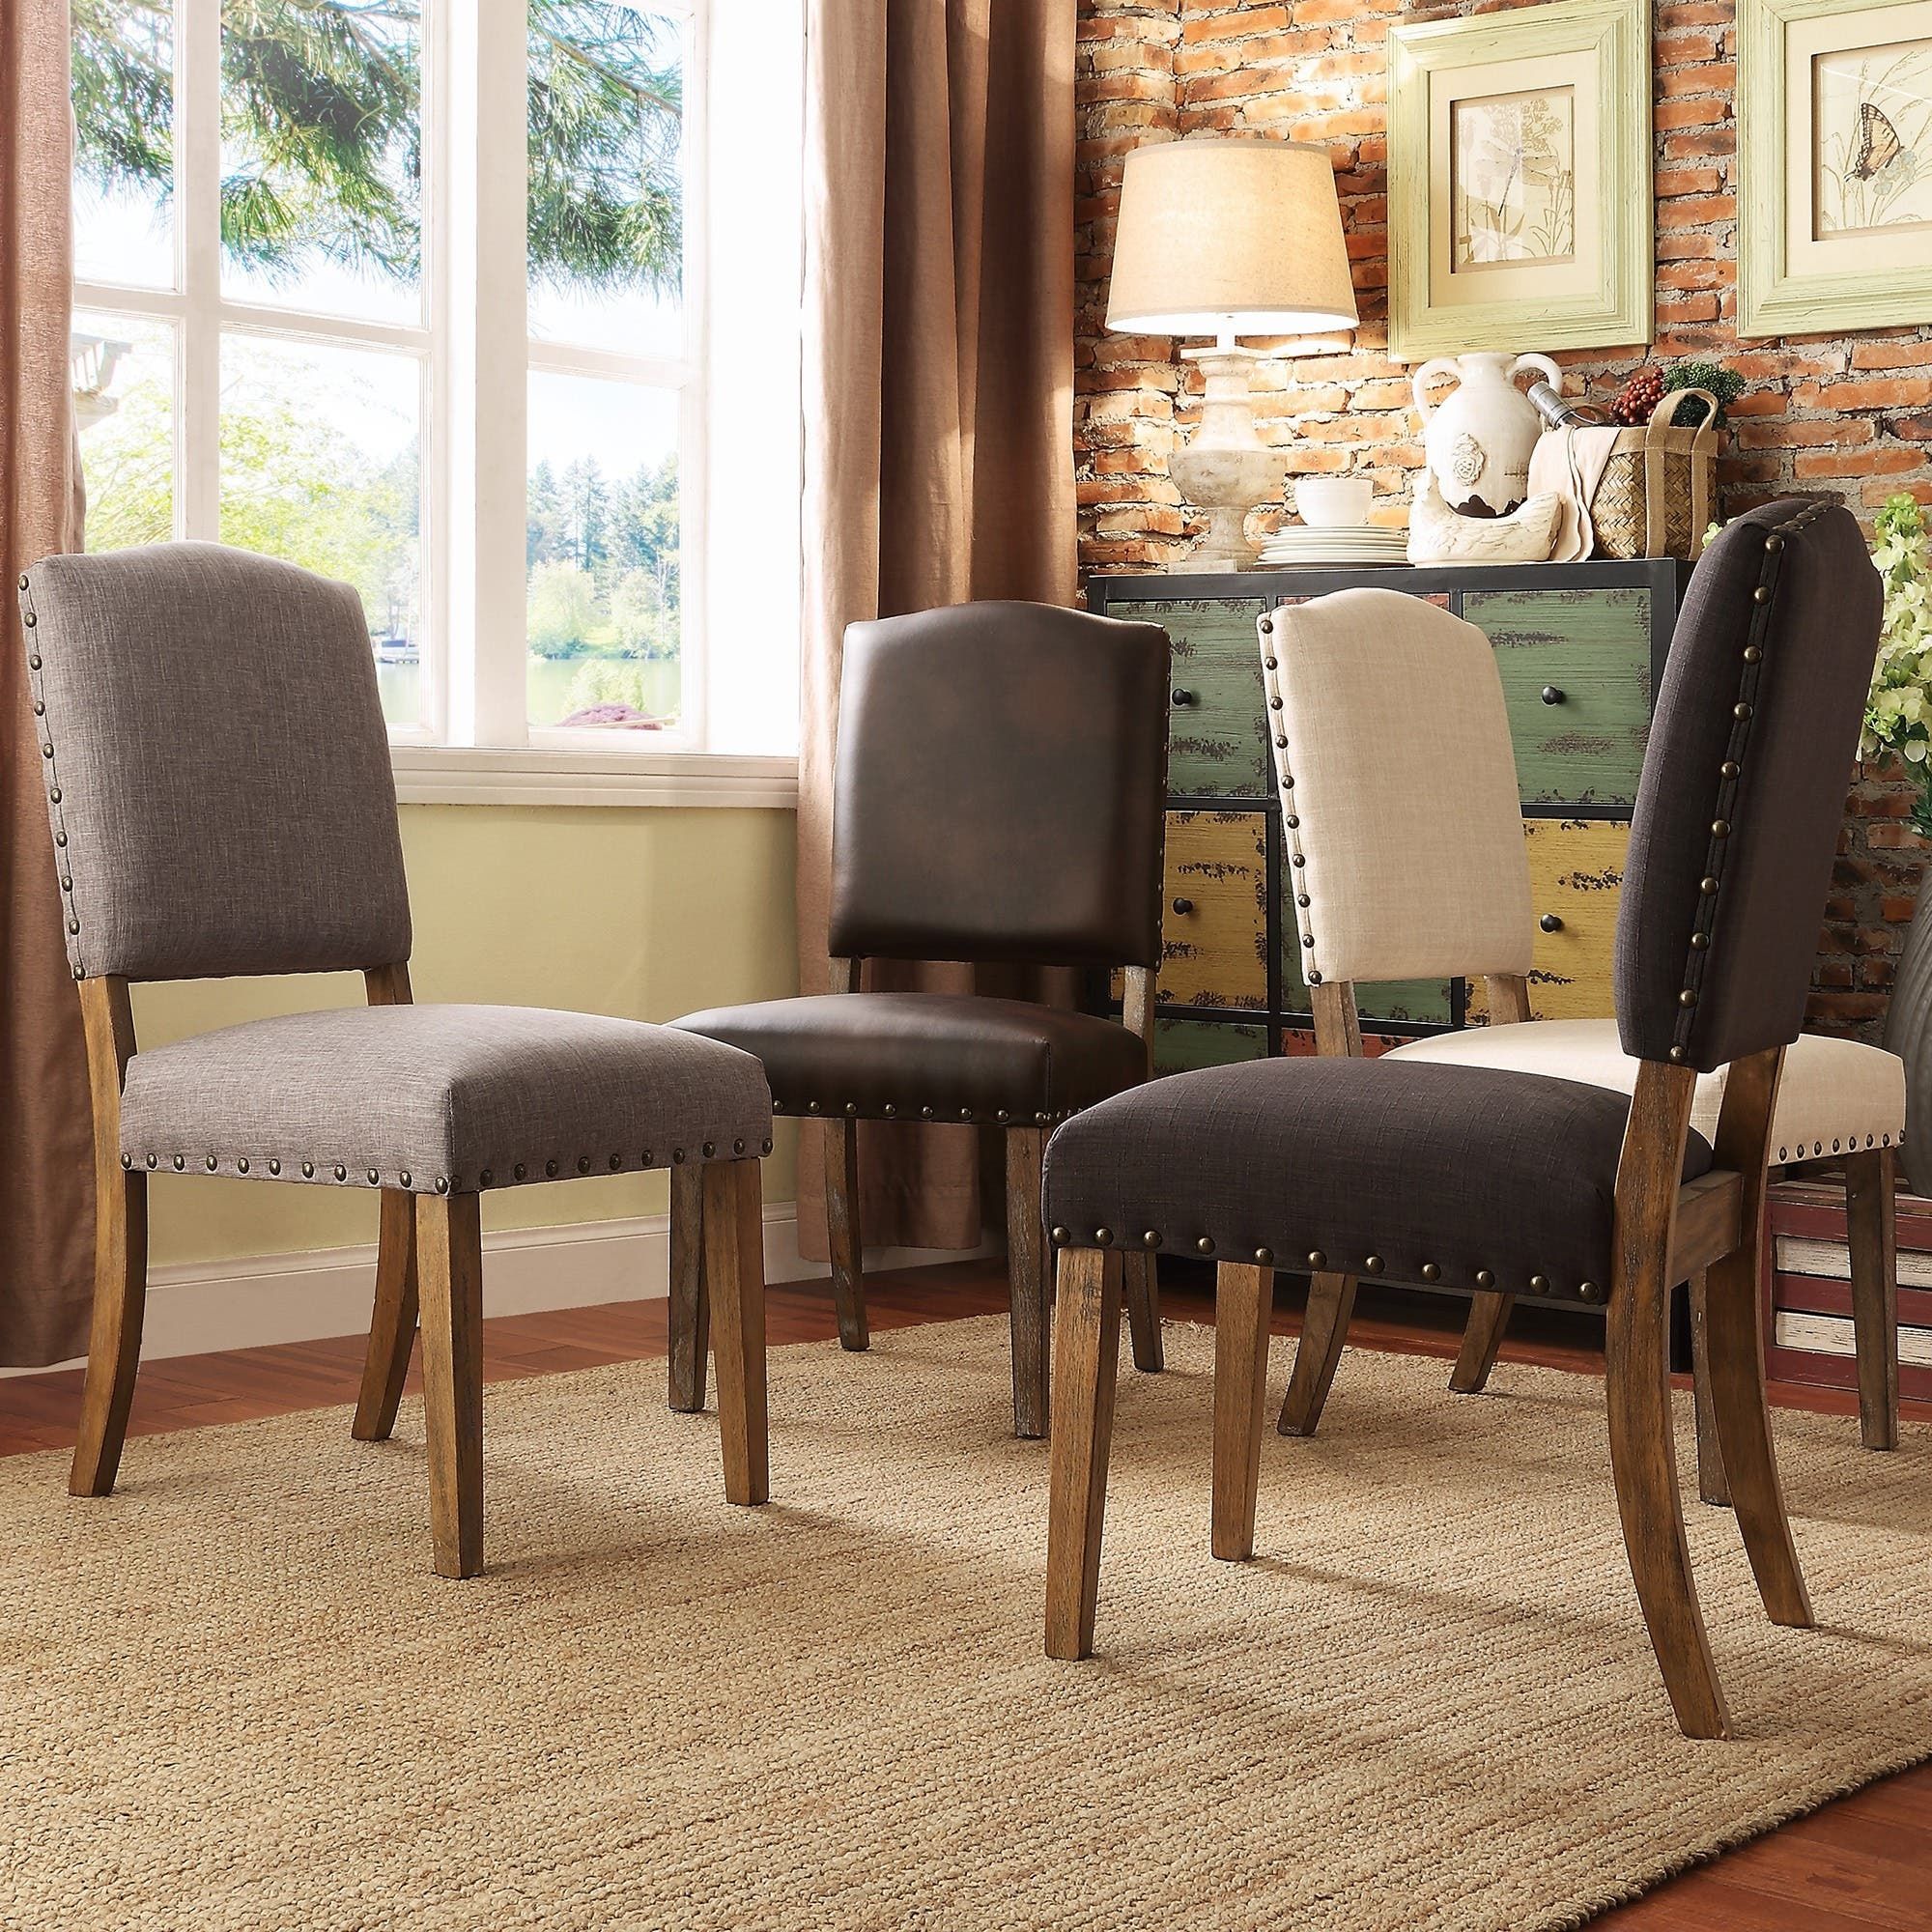 Best Place To Buy Dining Room Set: Buy Kitchen & Dining Room Chairs Online At Overstock